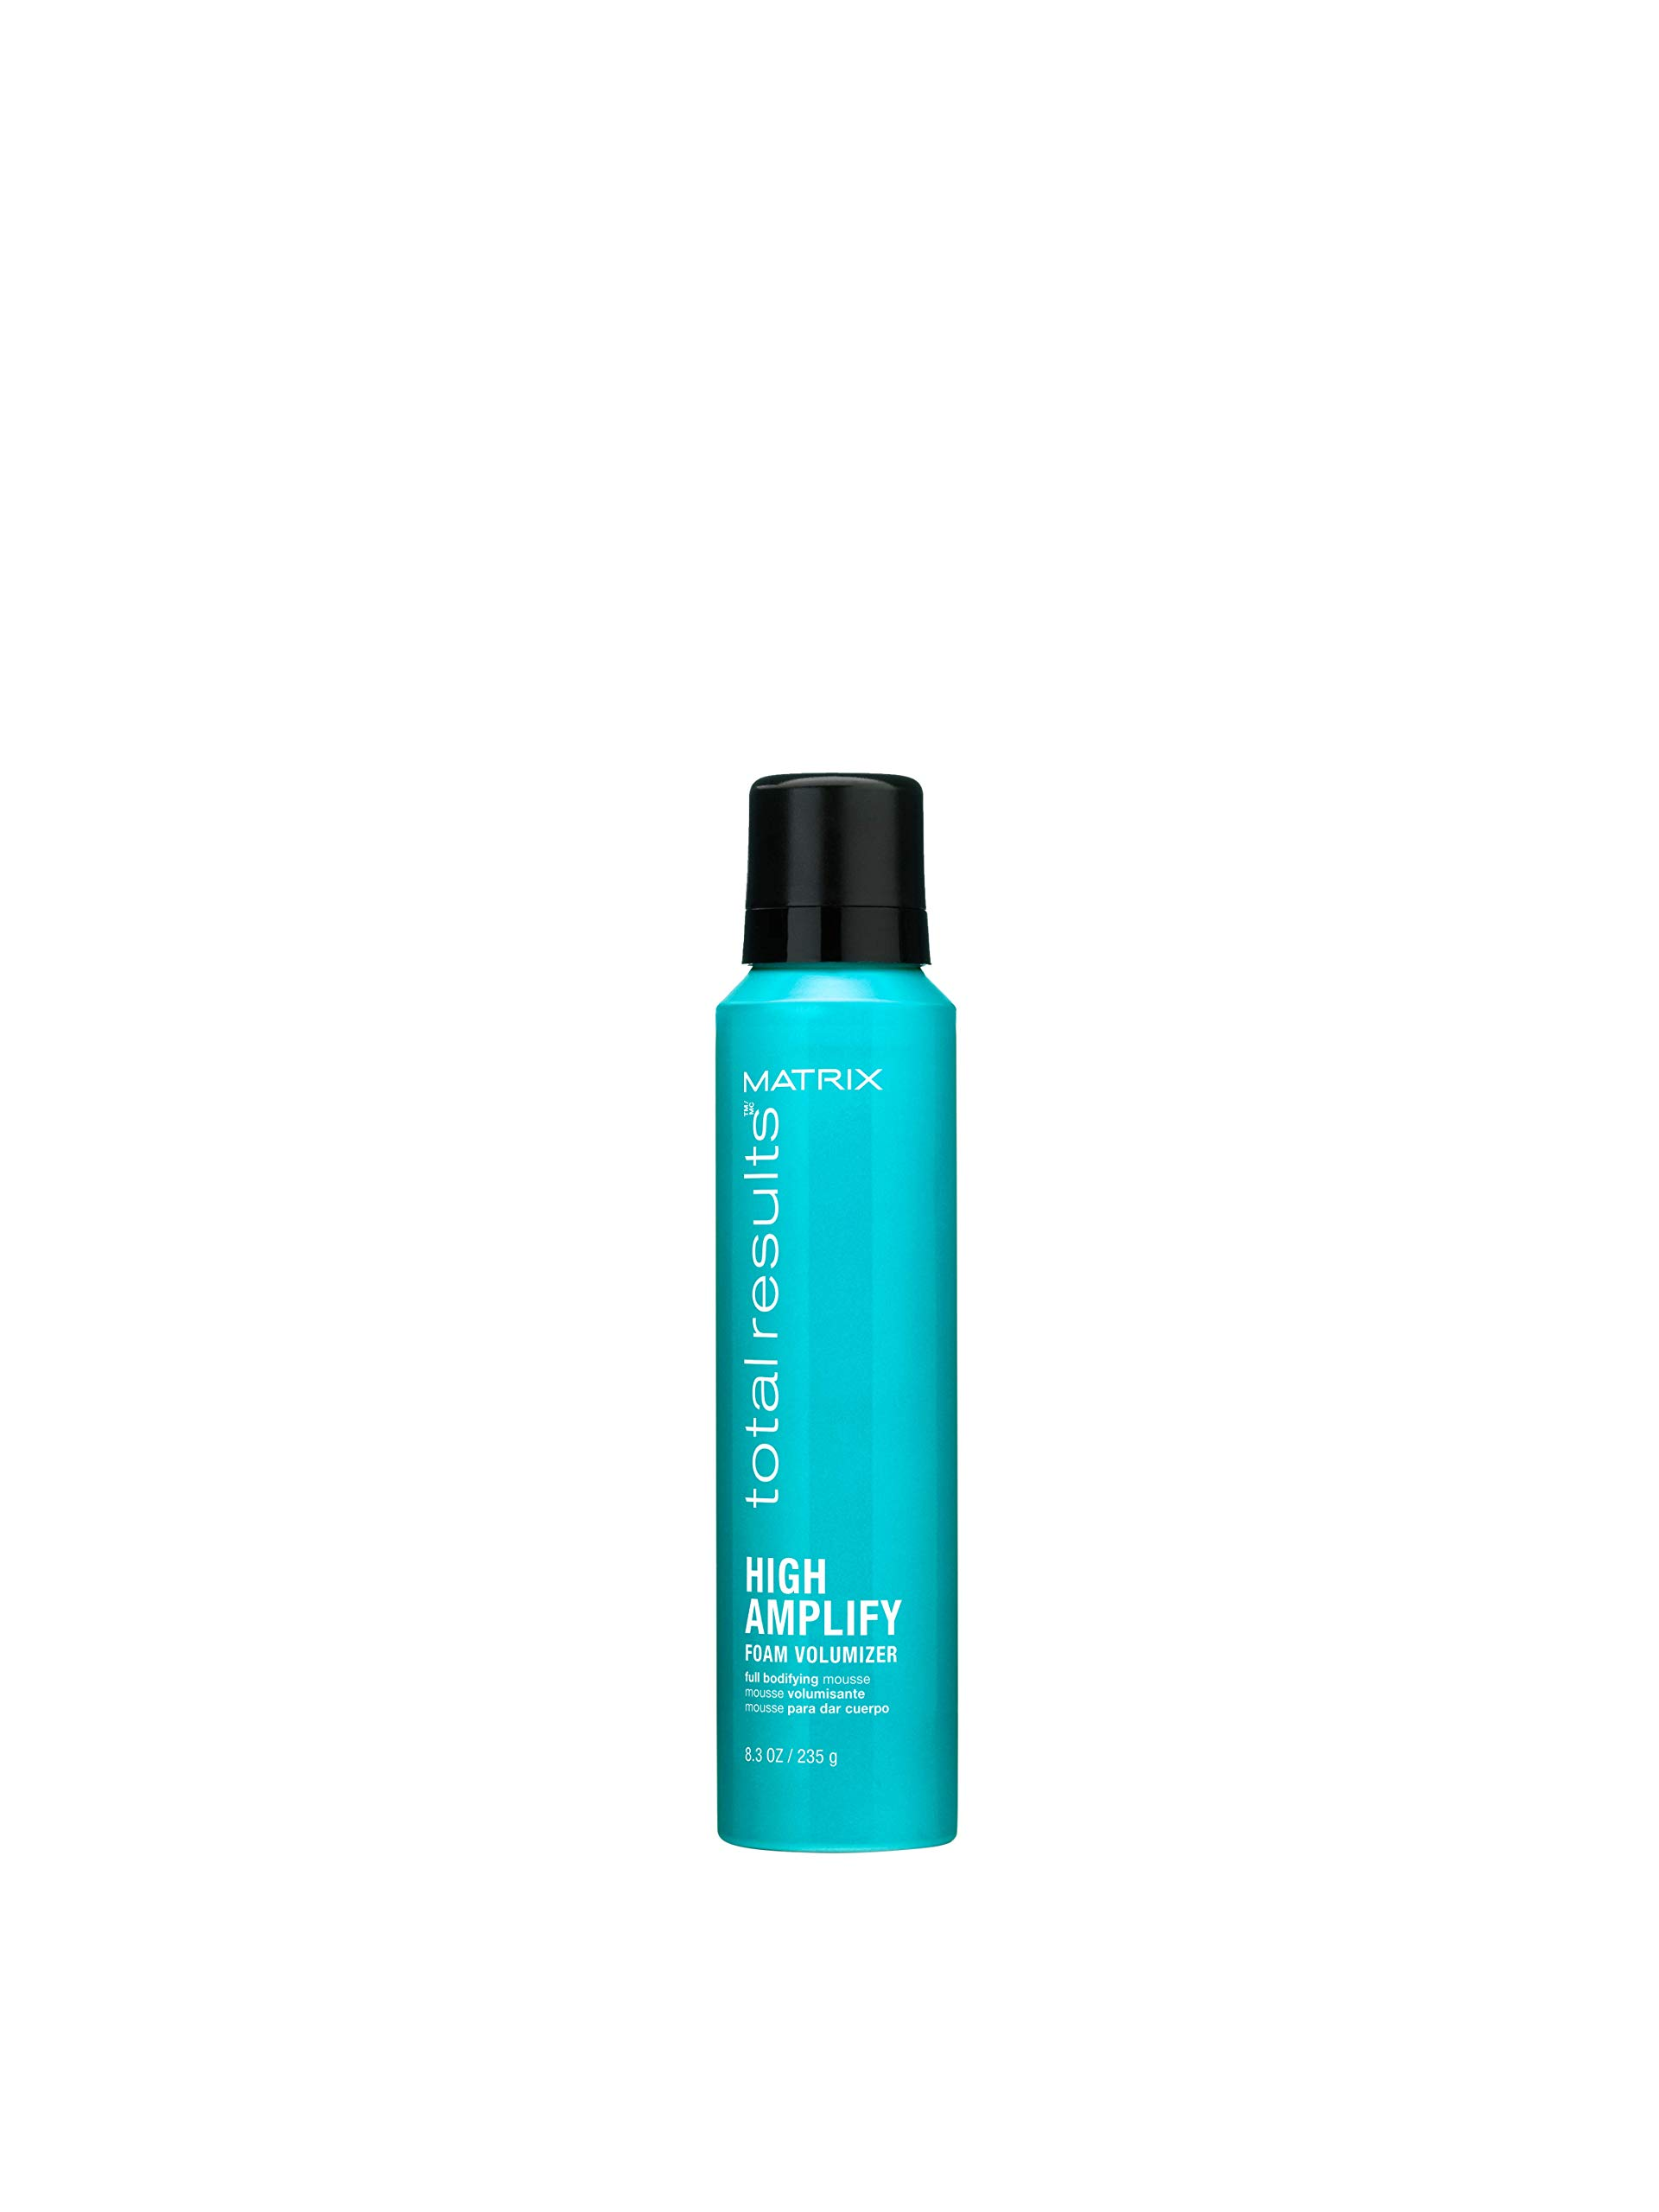 Matrix Total Results High Amplify Foam Volumizer for Unisex, 8.3 Ounce by MATRIX